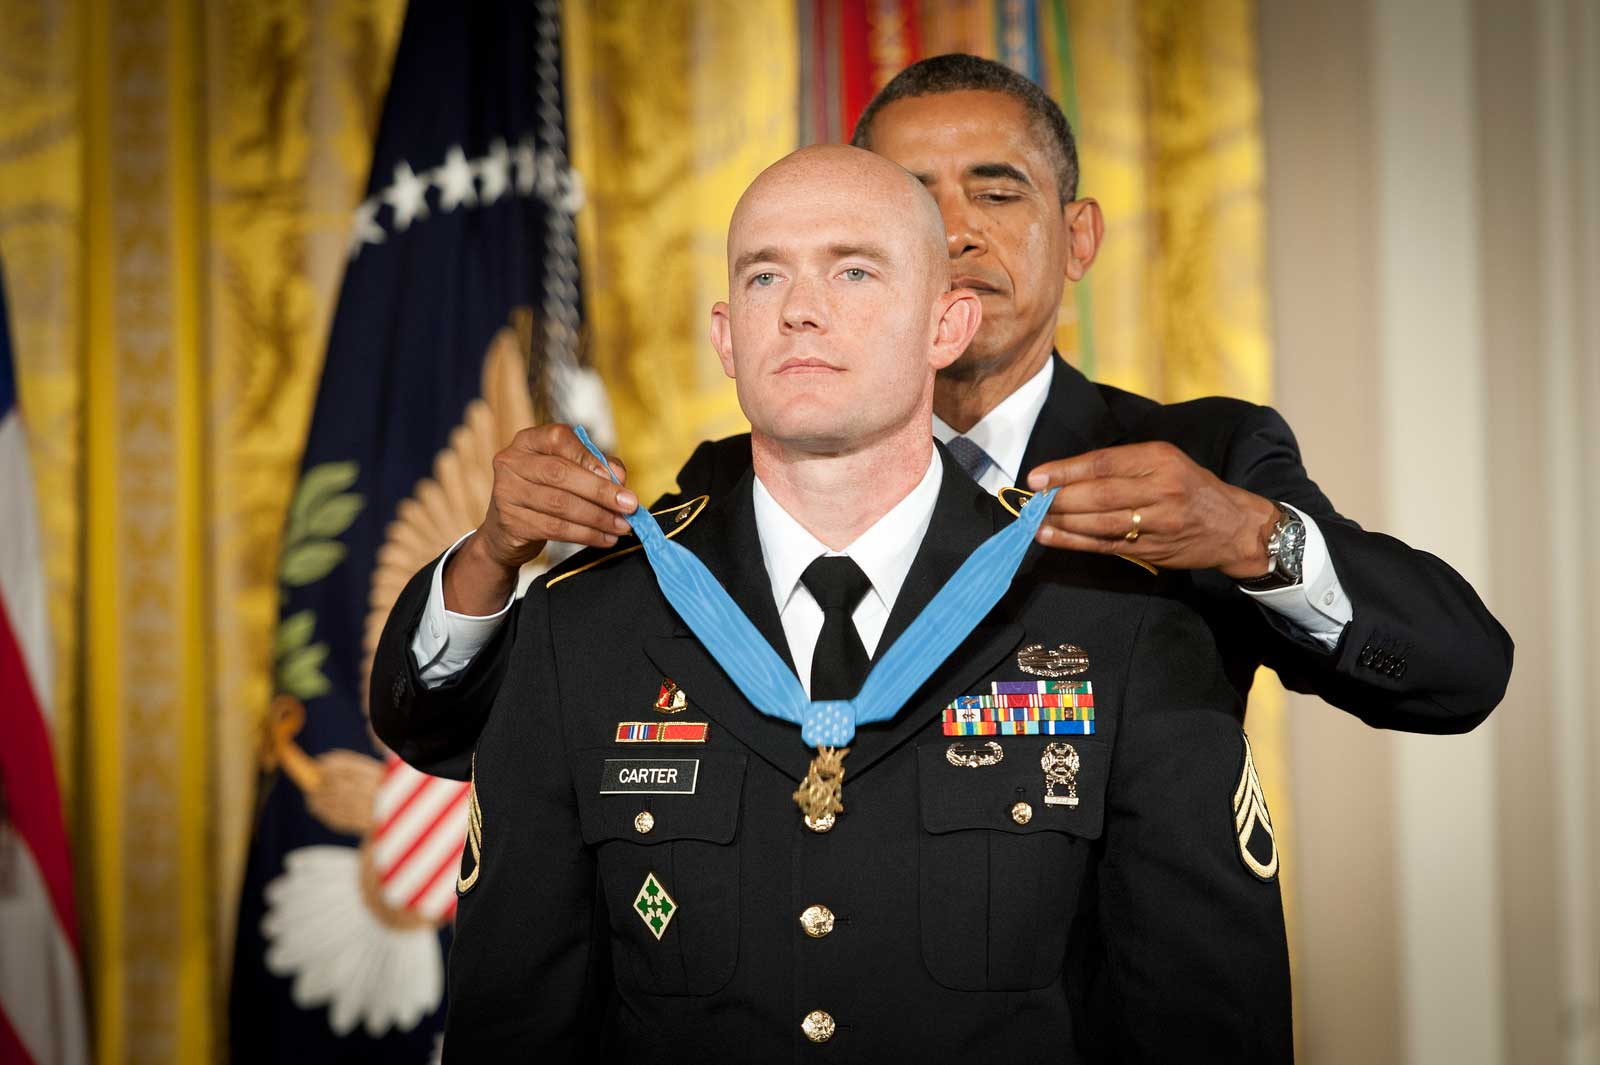 Ty Carter Medal of Honor